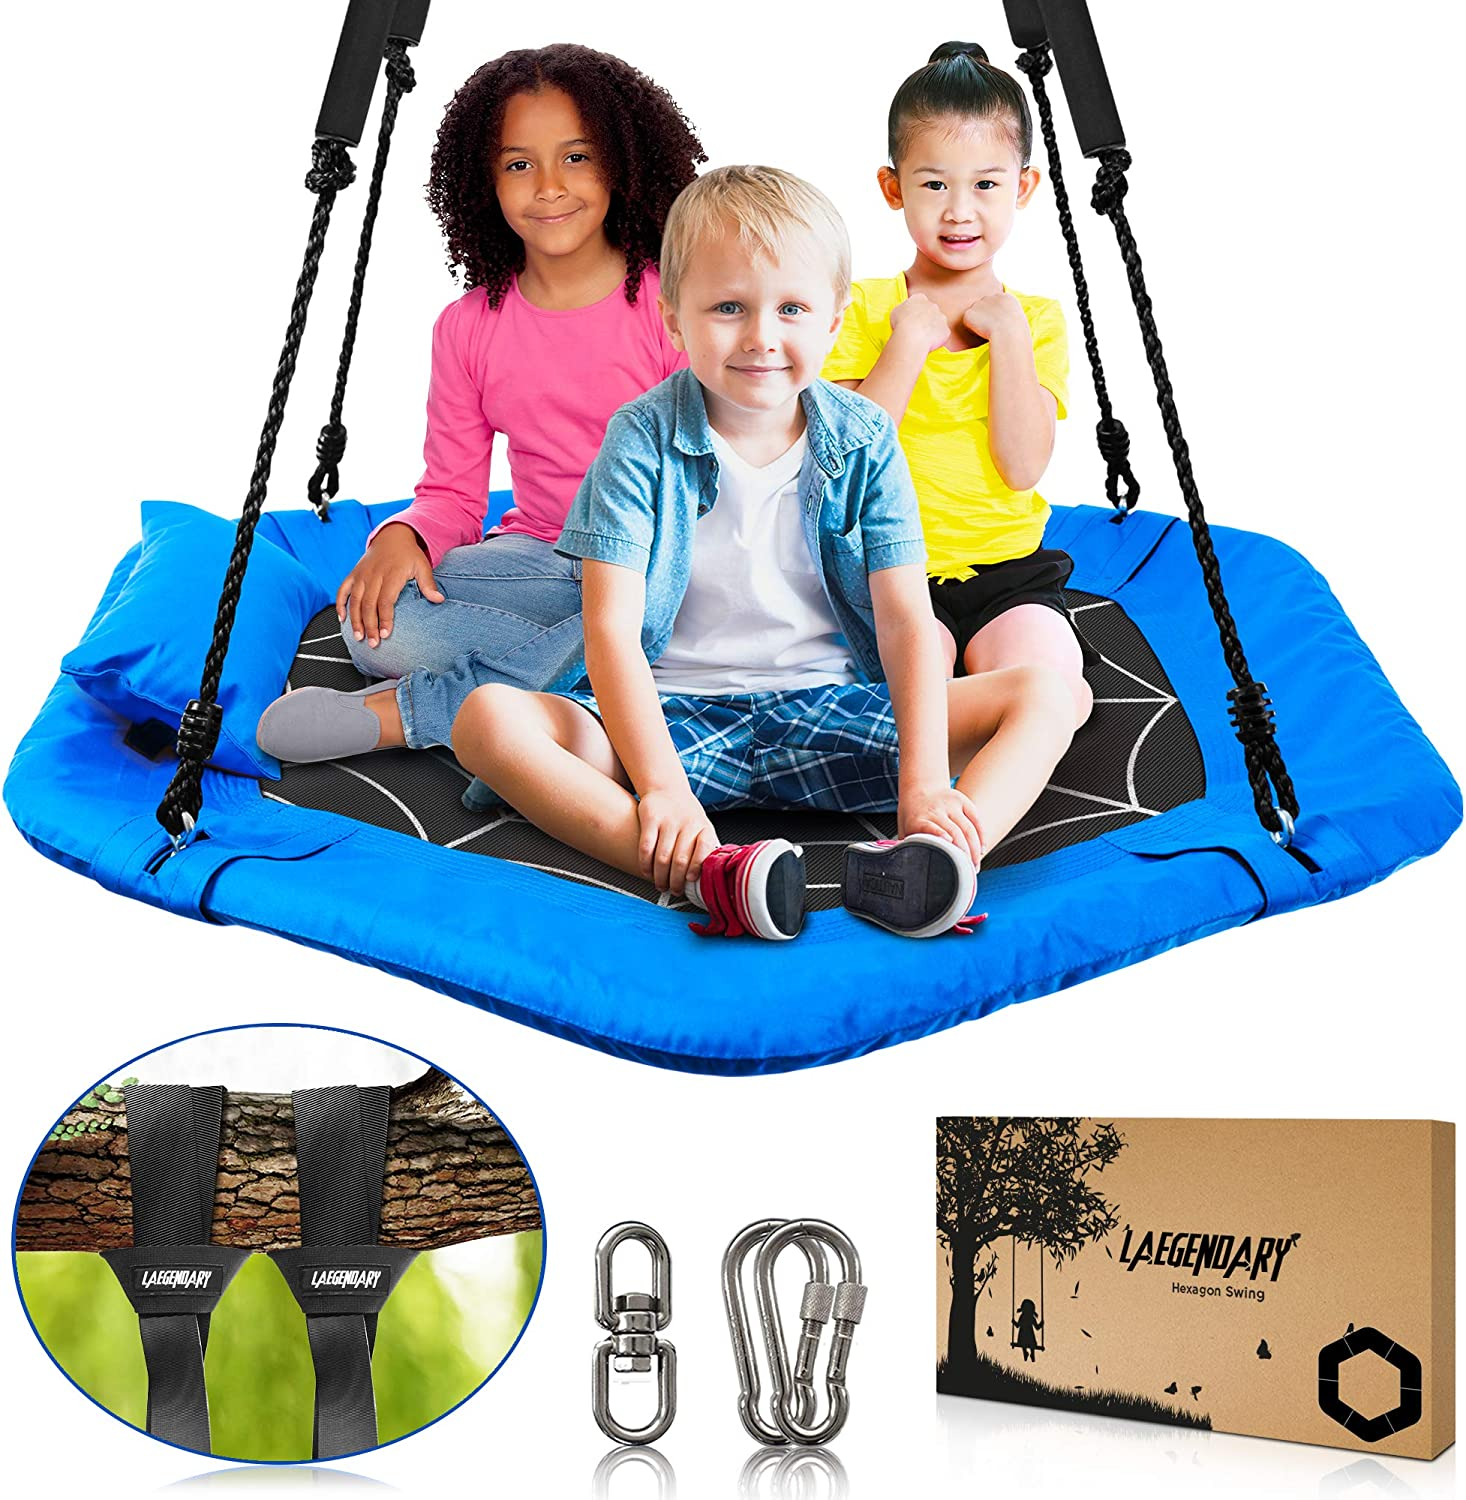 40 Inch Flying Saucer Tree Swing for Kids - Indoor Outdoor Swingset Toys - 700 Lbs Sensory Web Tire Swings - Durable Frame, Waterproof Yard Swings Set - 2 Tree Straps, 2 Carabiners, 1 Swivel